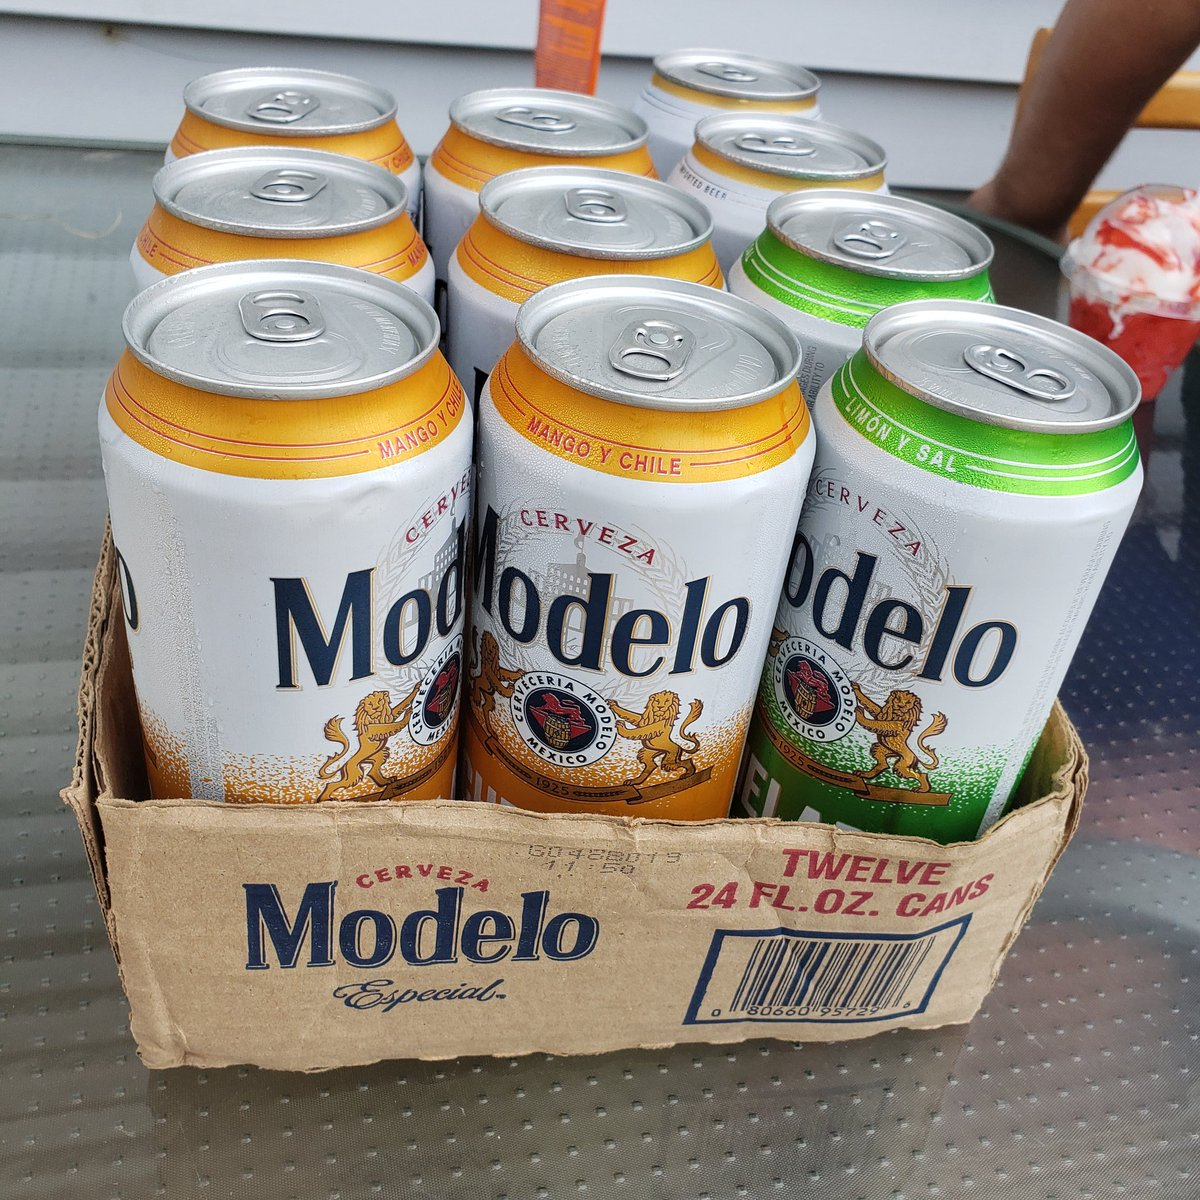 it's hot out and these tall boys are  #salud  #HolaModelo @ModeloUSApic.twitter.com/qFNprZDS7i